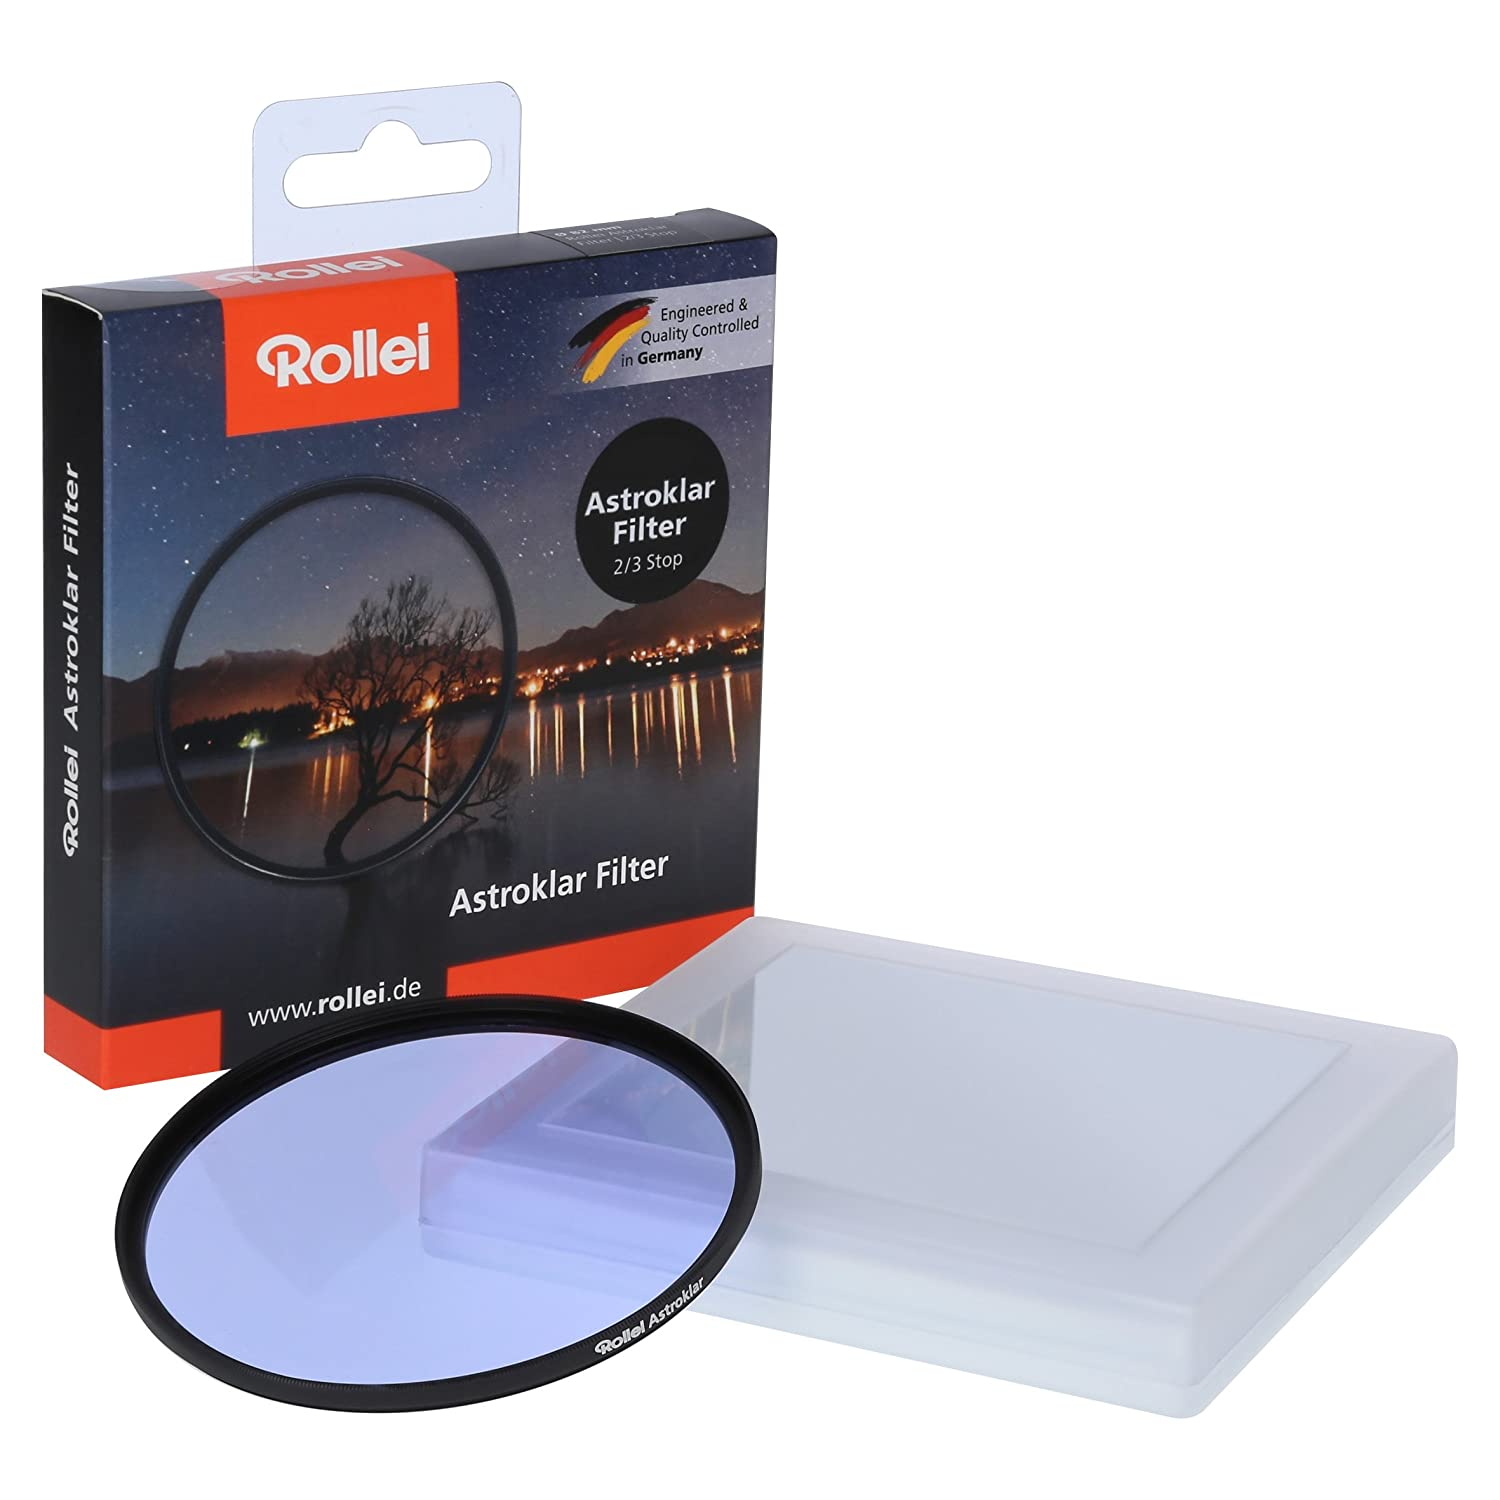 Rollei Astroklar Light Pollution Round Filter I 105mm Night Light Filter I Clear Night Filter for Astrophotography and Night Photography